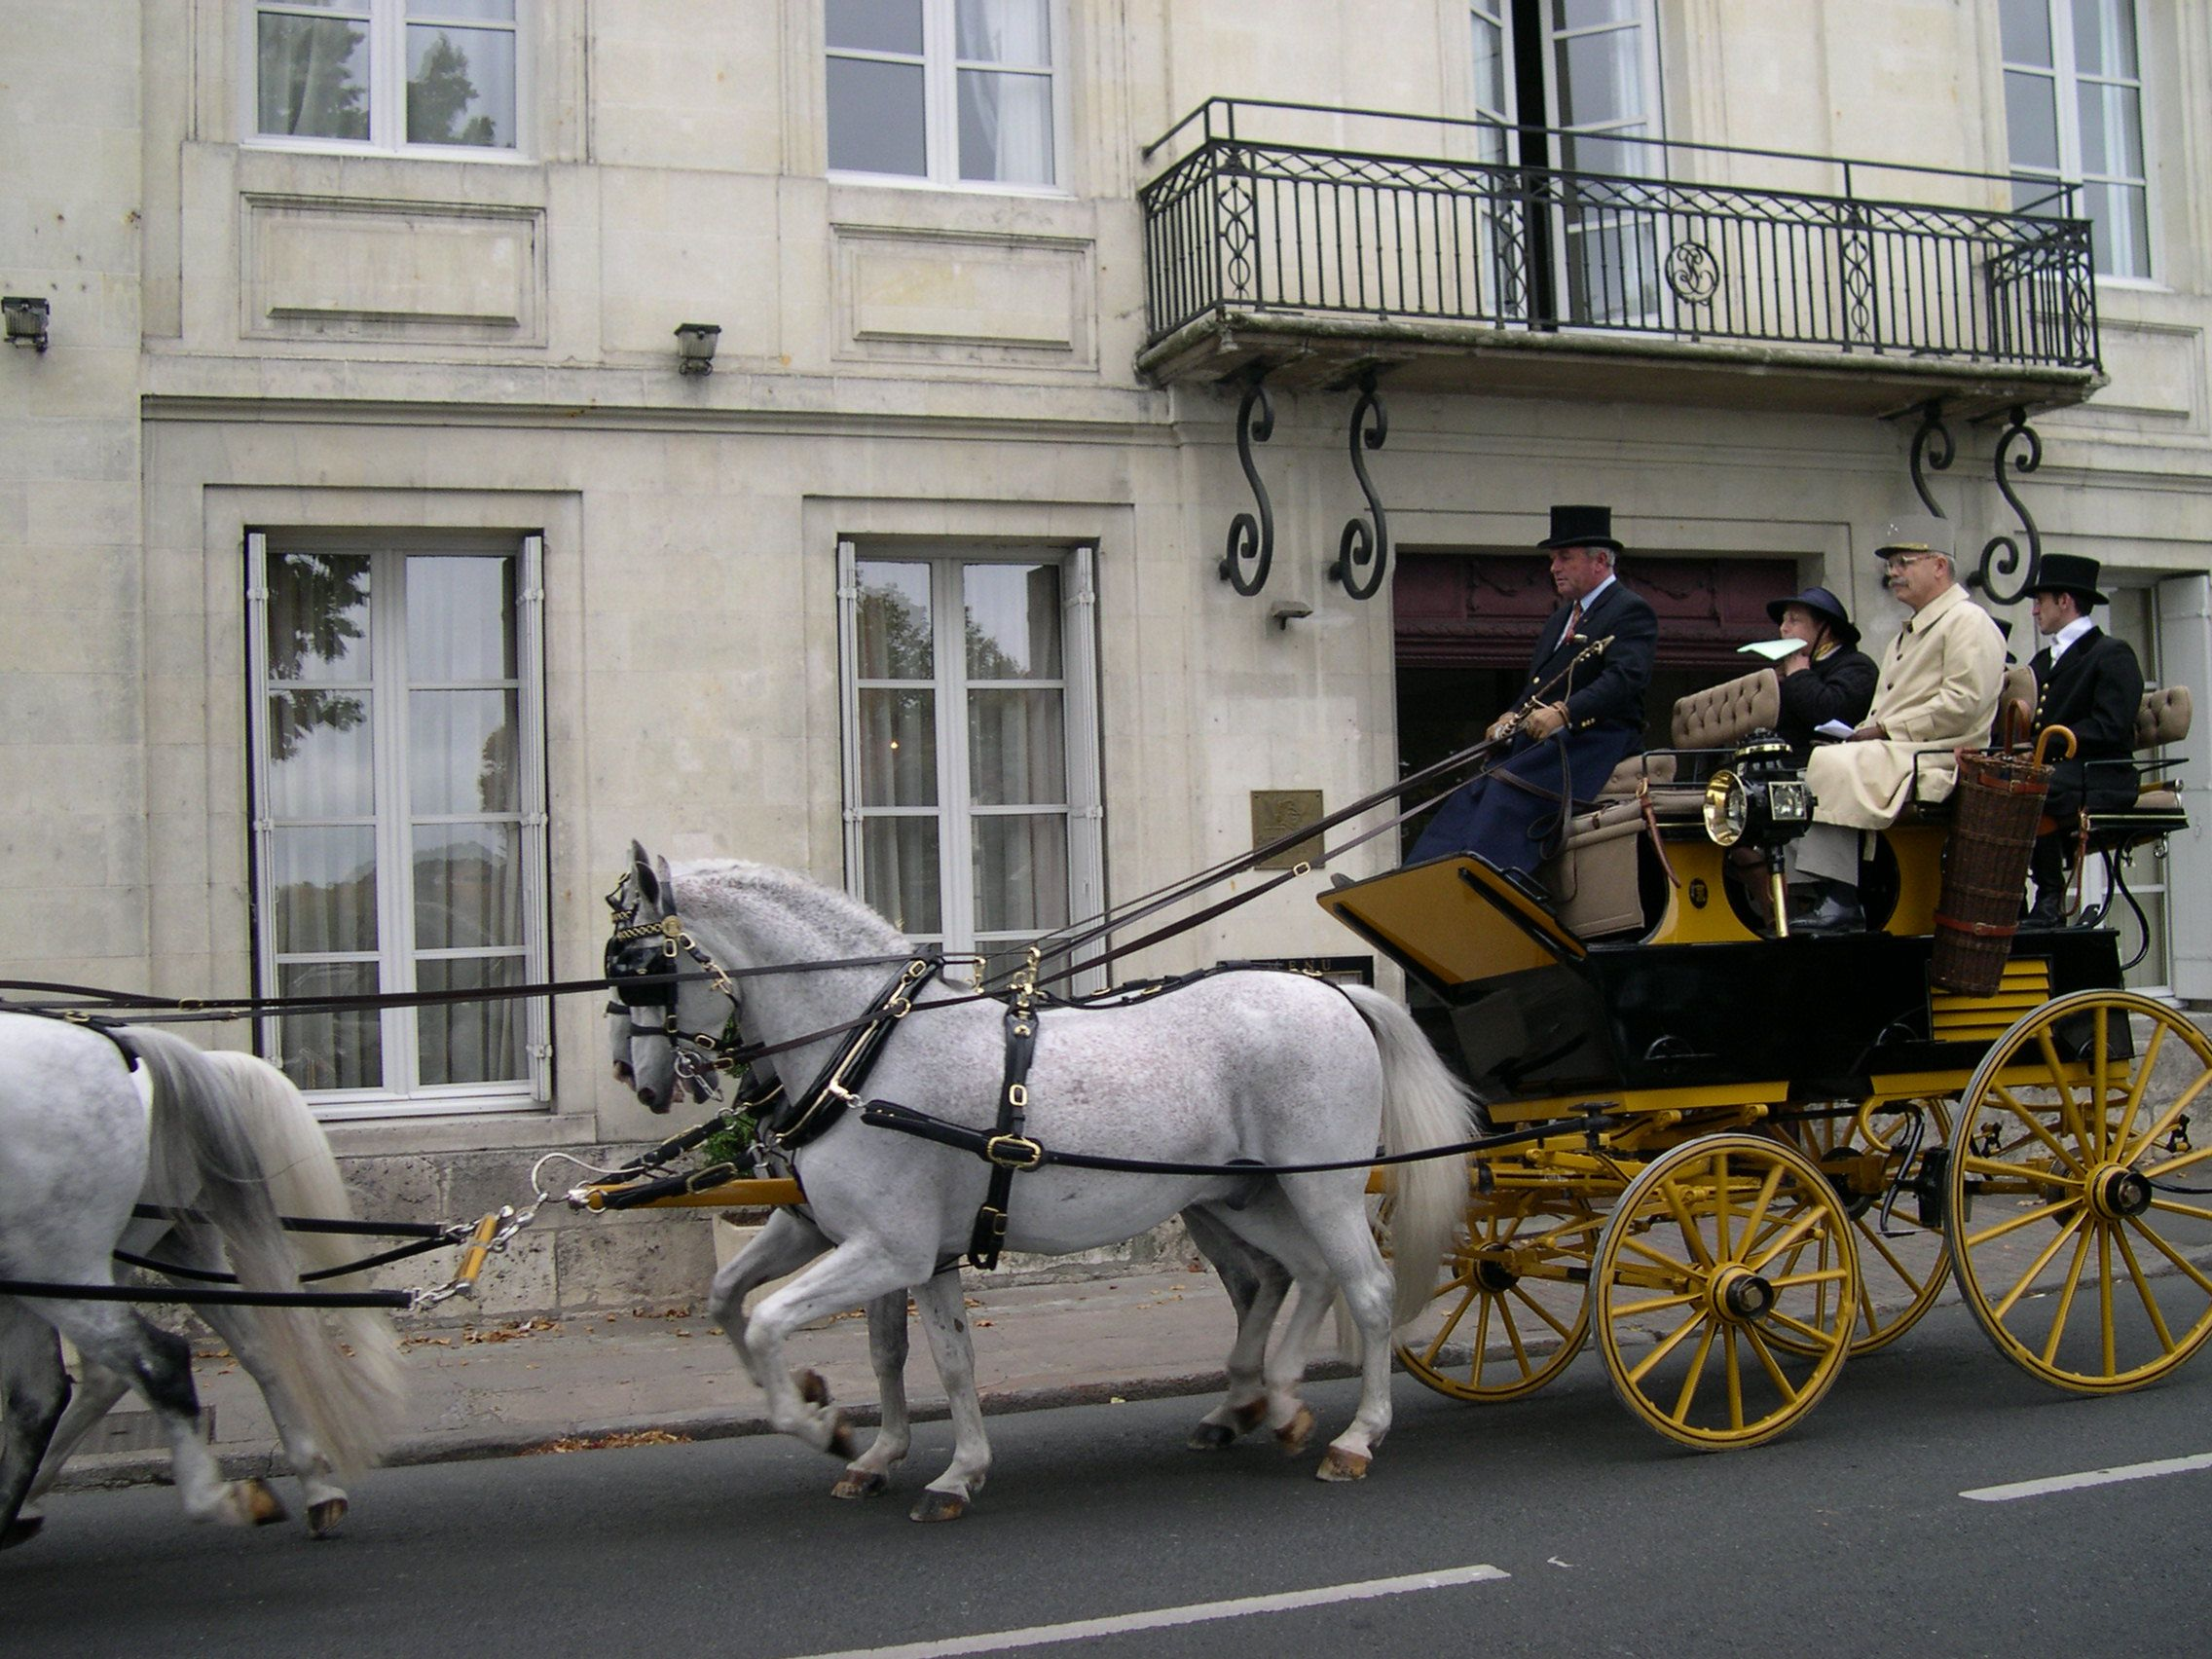 #oldschool carriage passing in front the #hotel facade